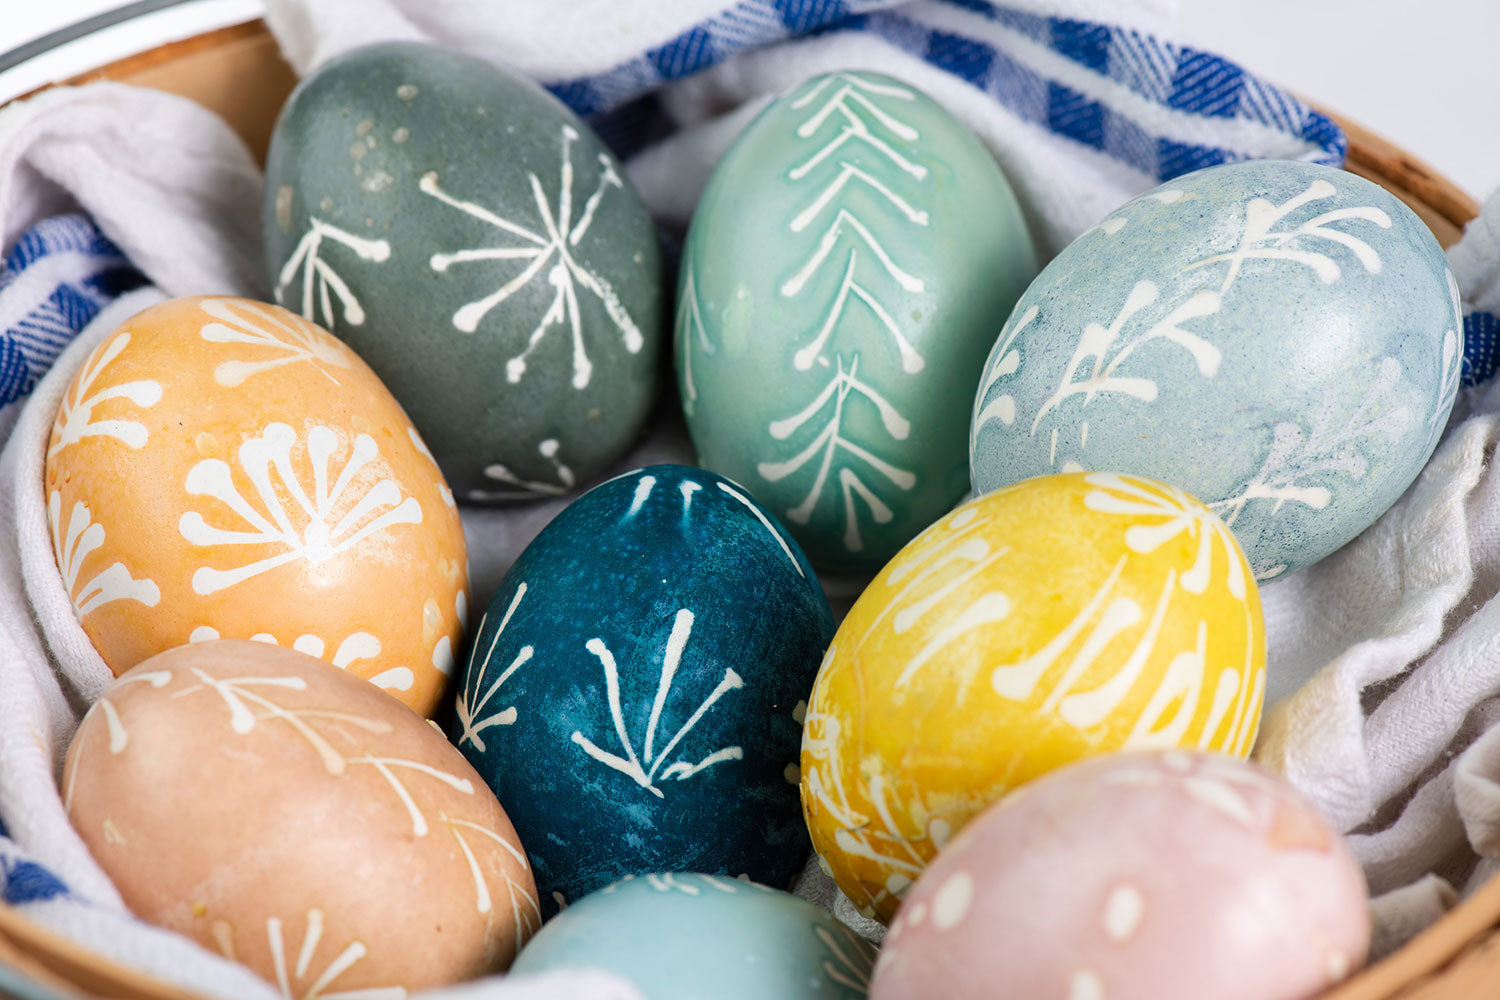 Traditional Lithuanian batik Easter eggs dyed with natural dyes presented in basket lined with tea towels